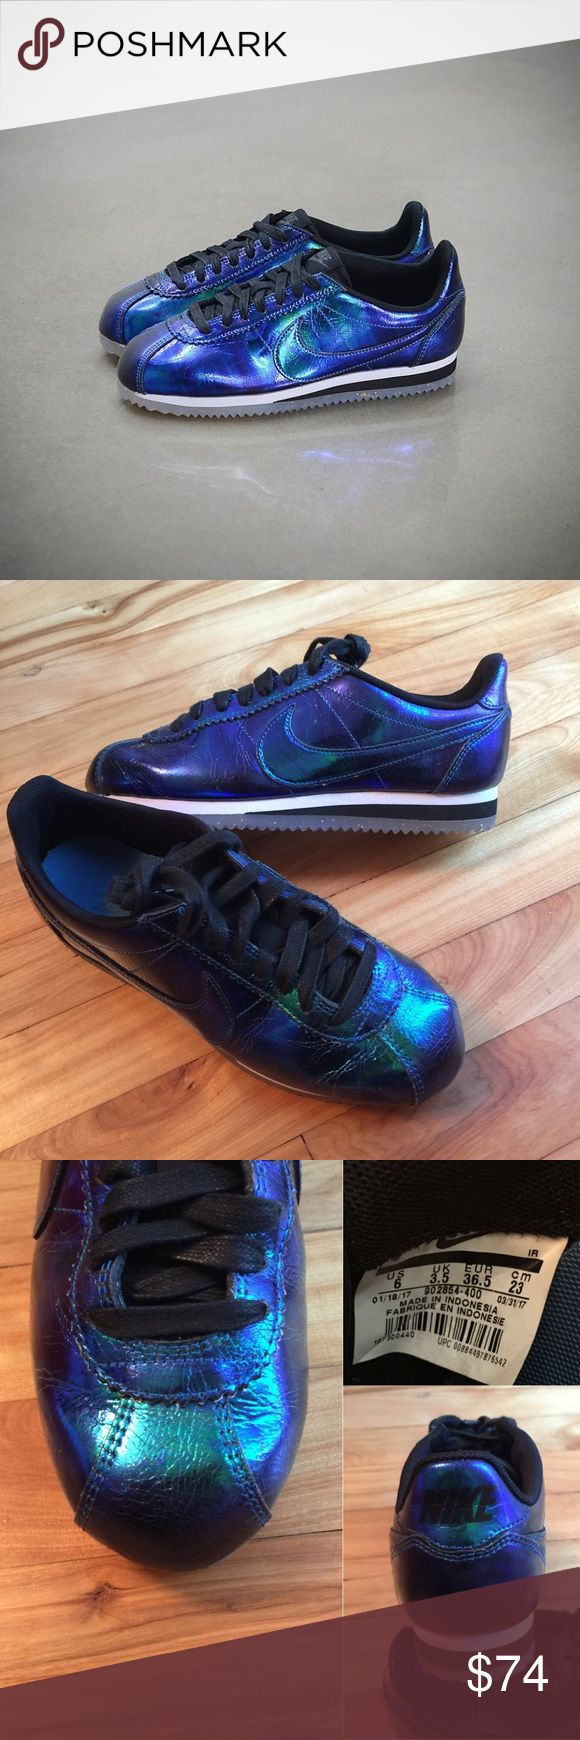 🌺New🌺 NIKE Classic Cortez Leather SE ~ 6 brand new no lid size 6 soar/white/black comes from smoke free home guaranteed 100% authentic A1700039 Nike Shoes Sneakers